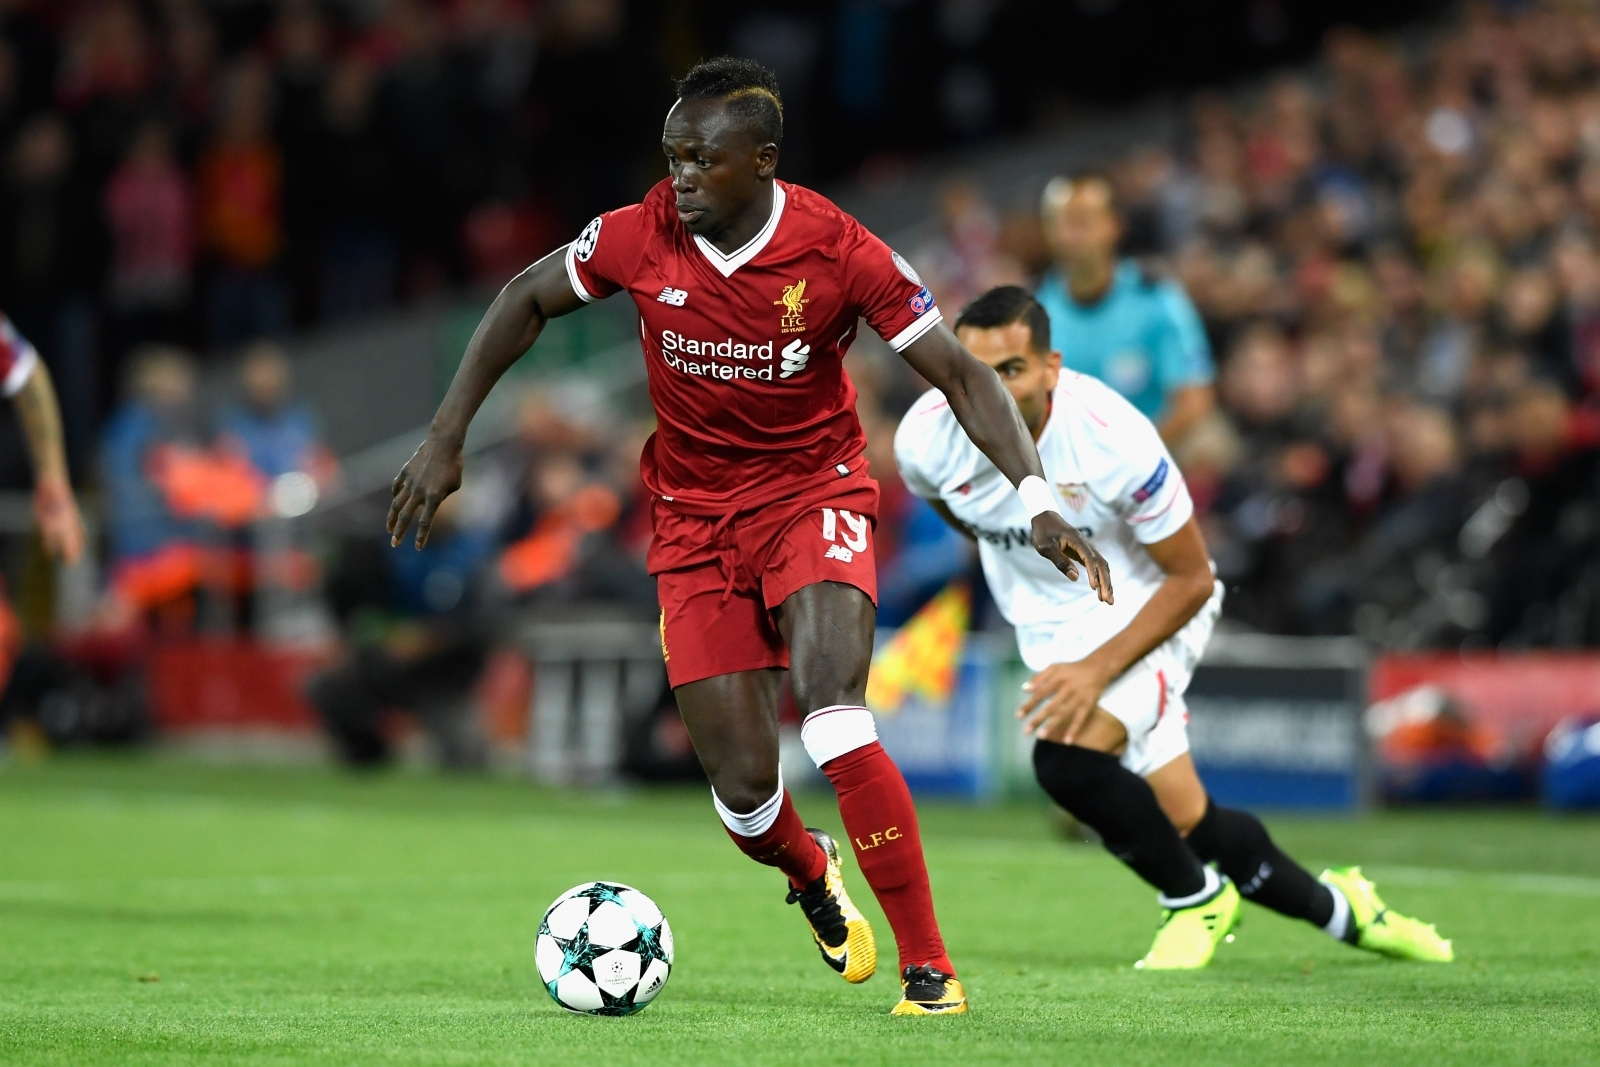 Sadio Mane's Liverpool comeback date unknown, says Jurgen Klopp